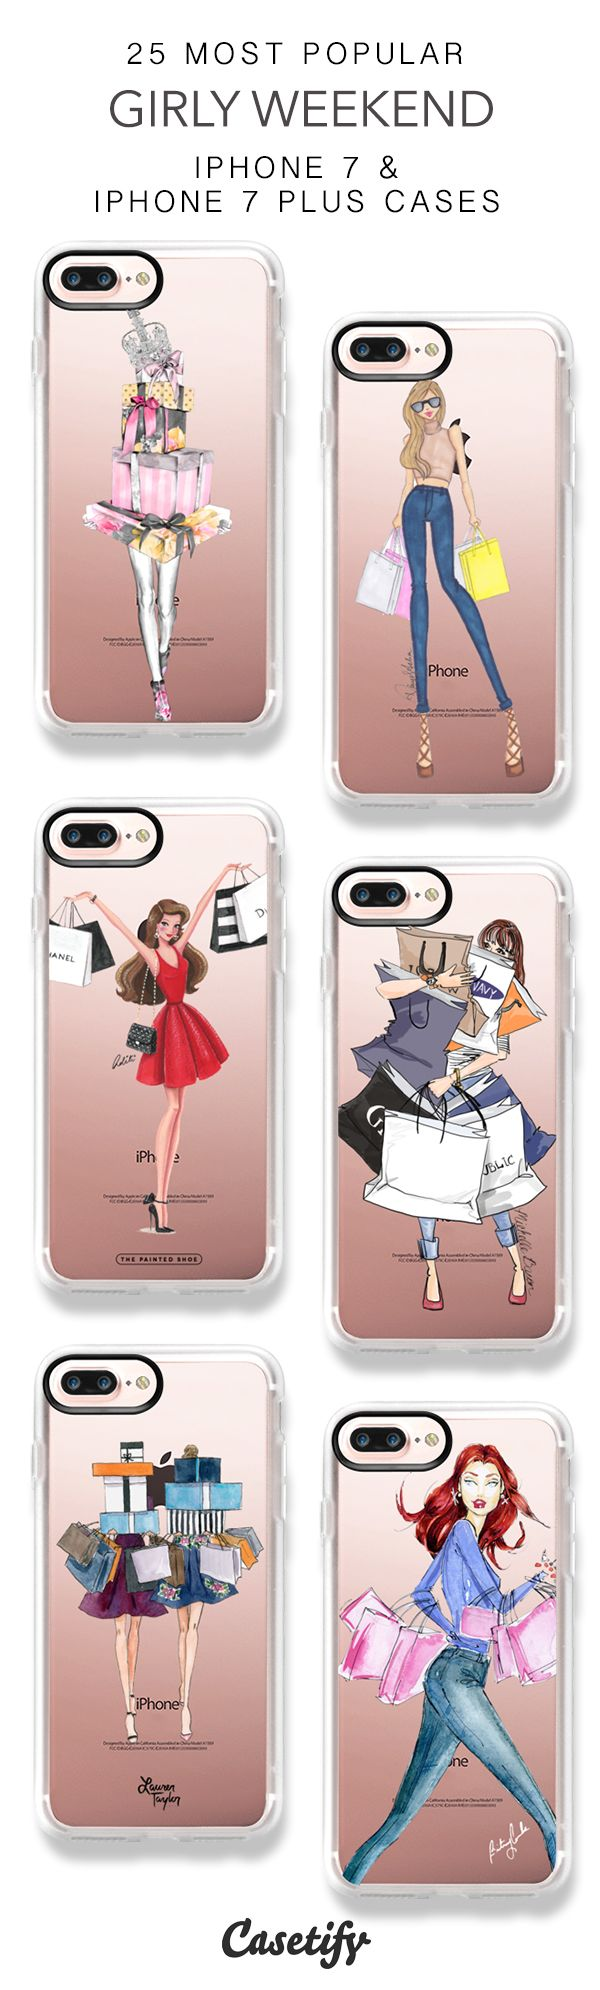 25 Most Popular Girly Weekend iPhone 7 Cases and iPhone 7 Plus Cases. More Shopping iPhone case here > https://www.casetify.com/collections/top_100_designs#/?vc=o7qr9rD0UO